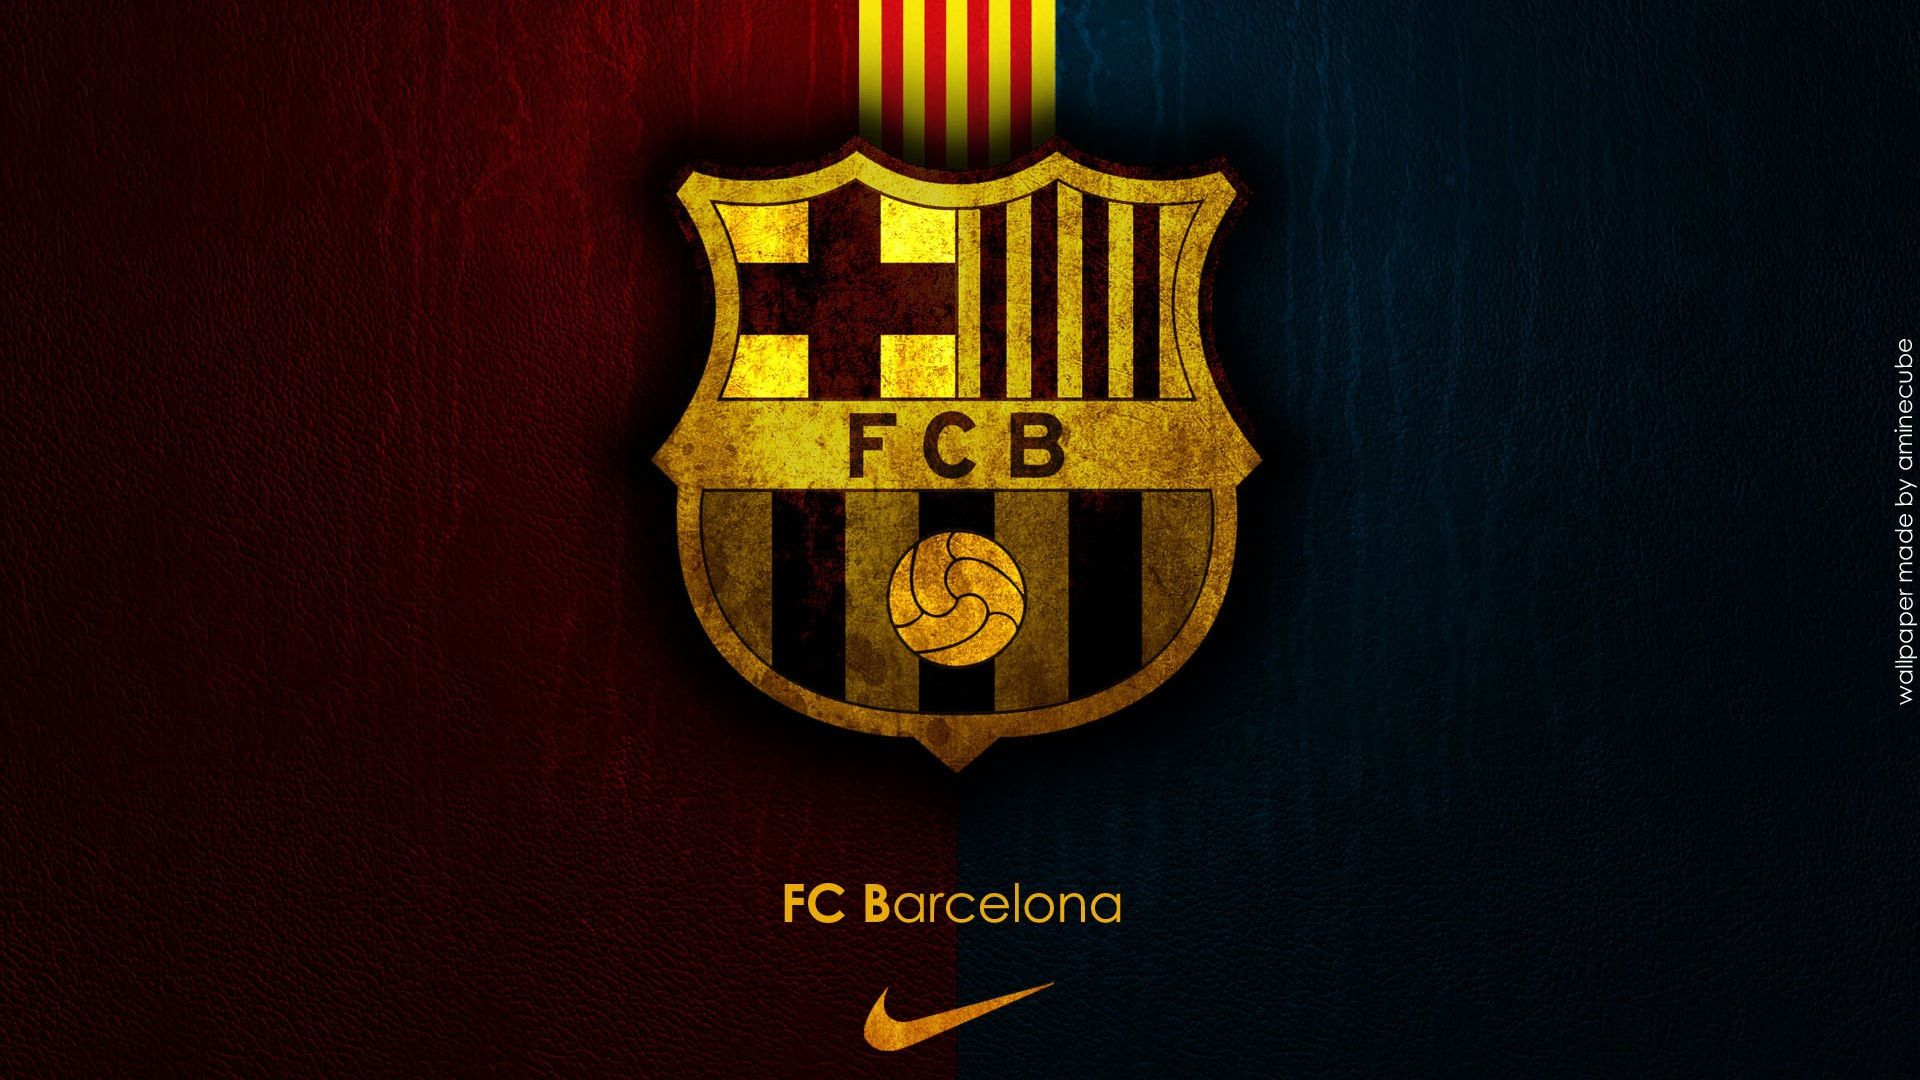 Fondos De Pantalla Del Fútbol Club Barcelona Wallpapers: Full HD 1080p Barcelona Wallpapers HD, Desktop Backgrounds